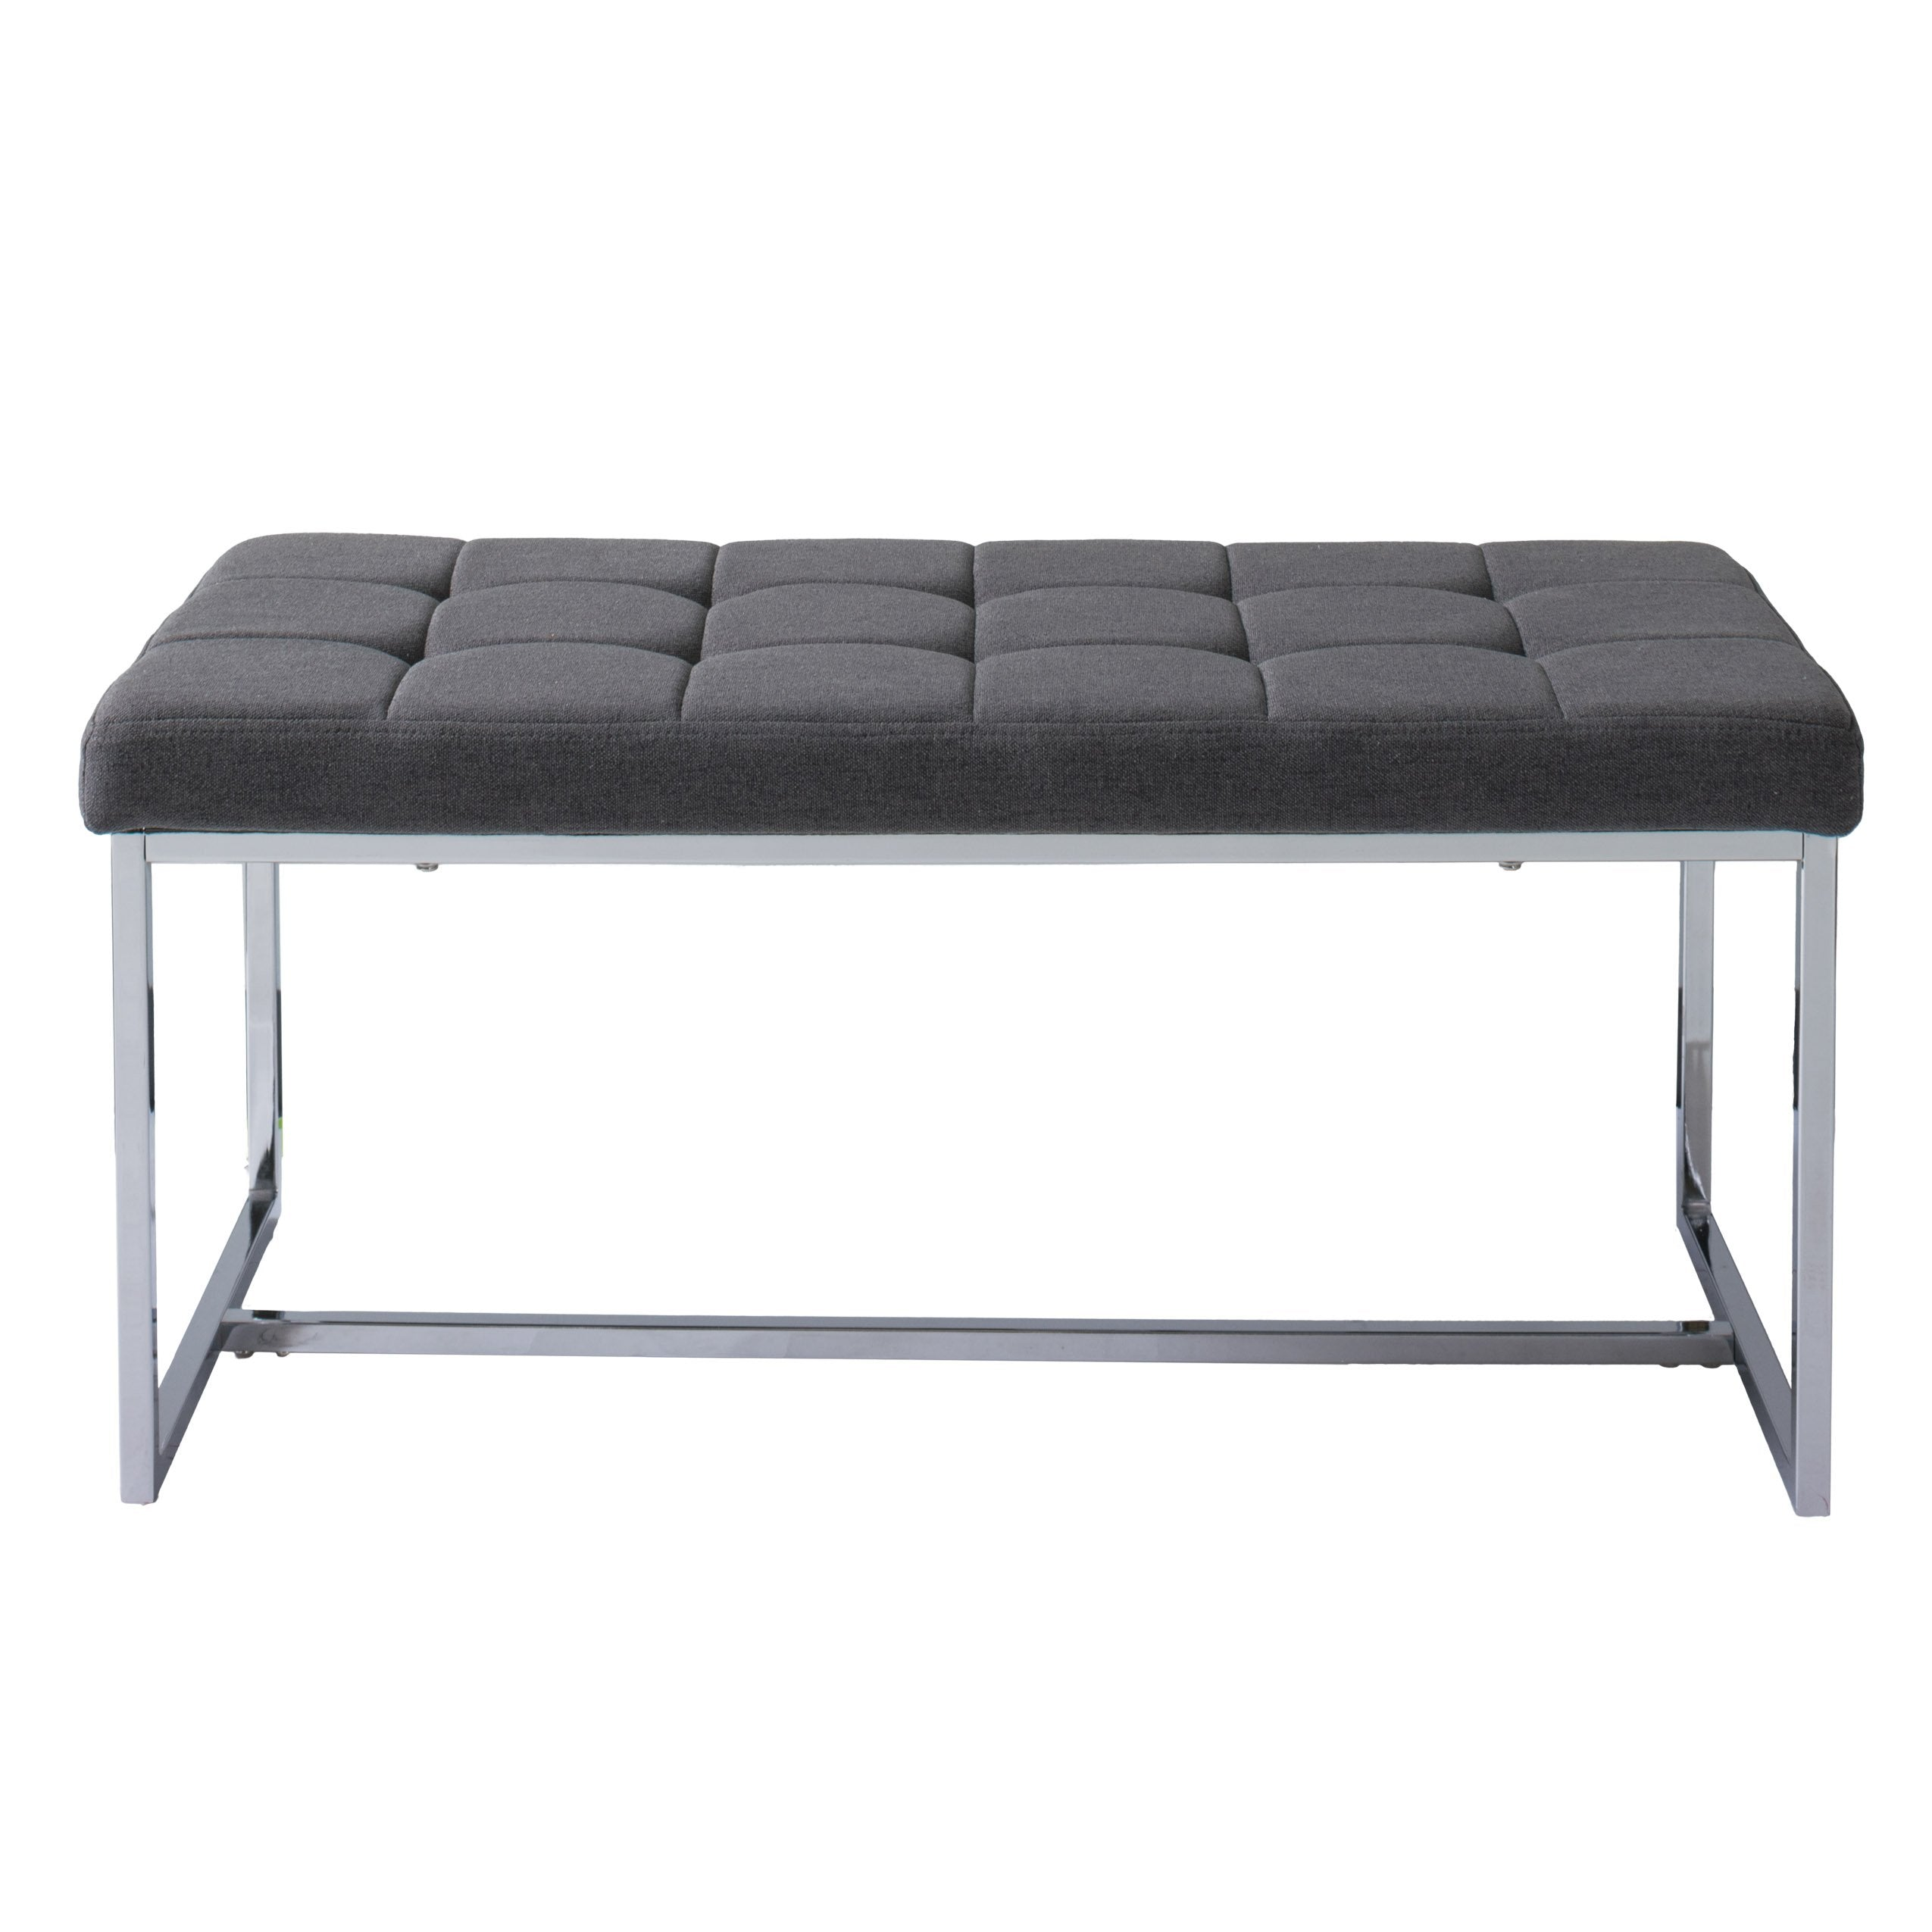 Incredible Modern Fabric Bench With Chrome Base Clearance Gmtry Best Dining Table And Chair Ideas Images Gmtryco